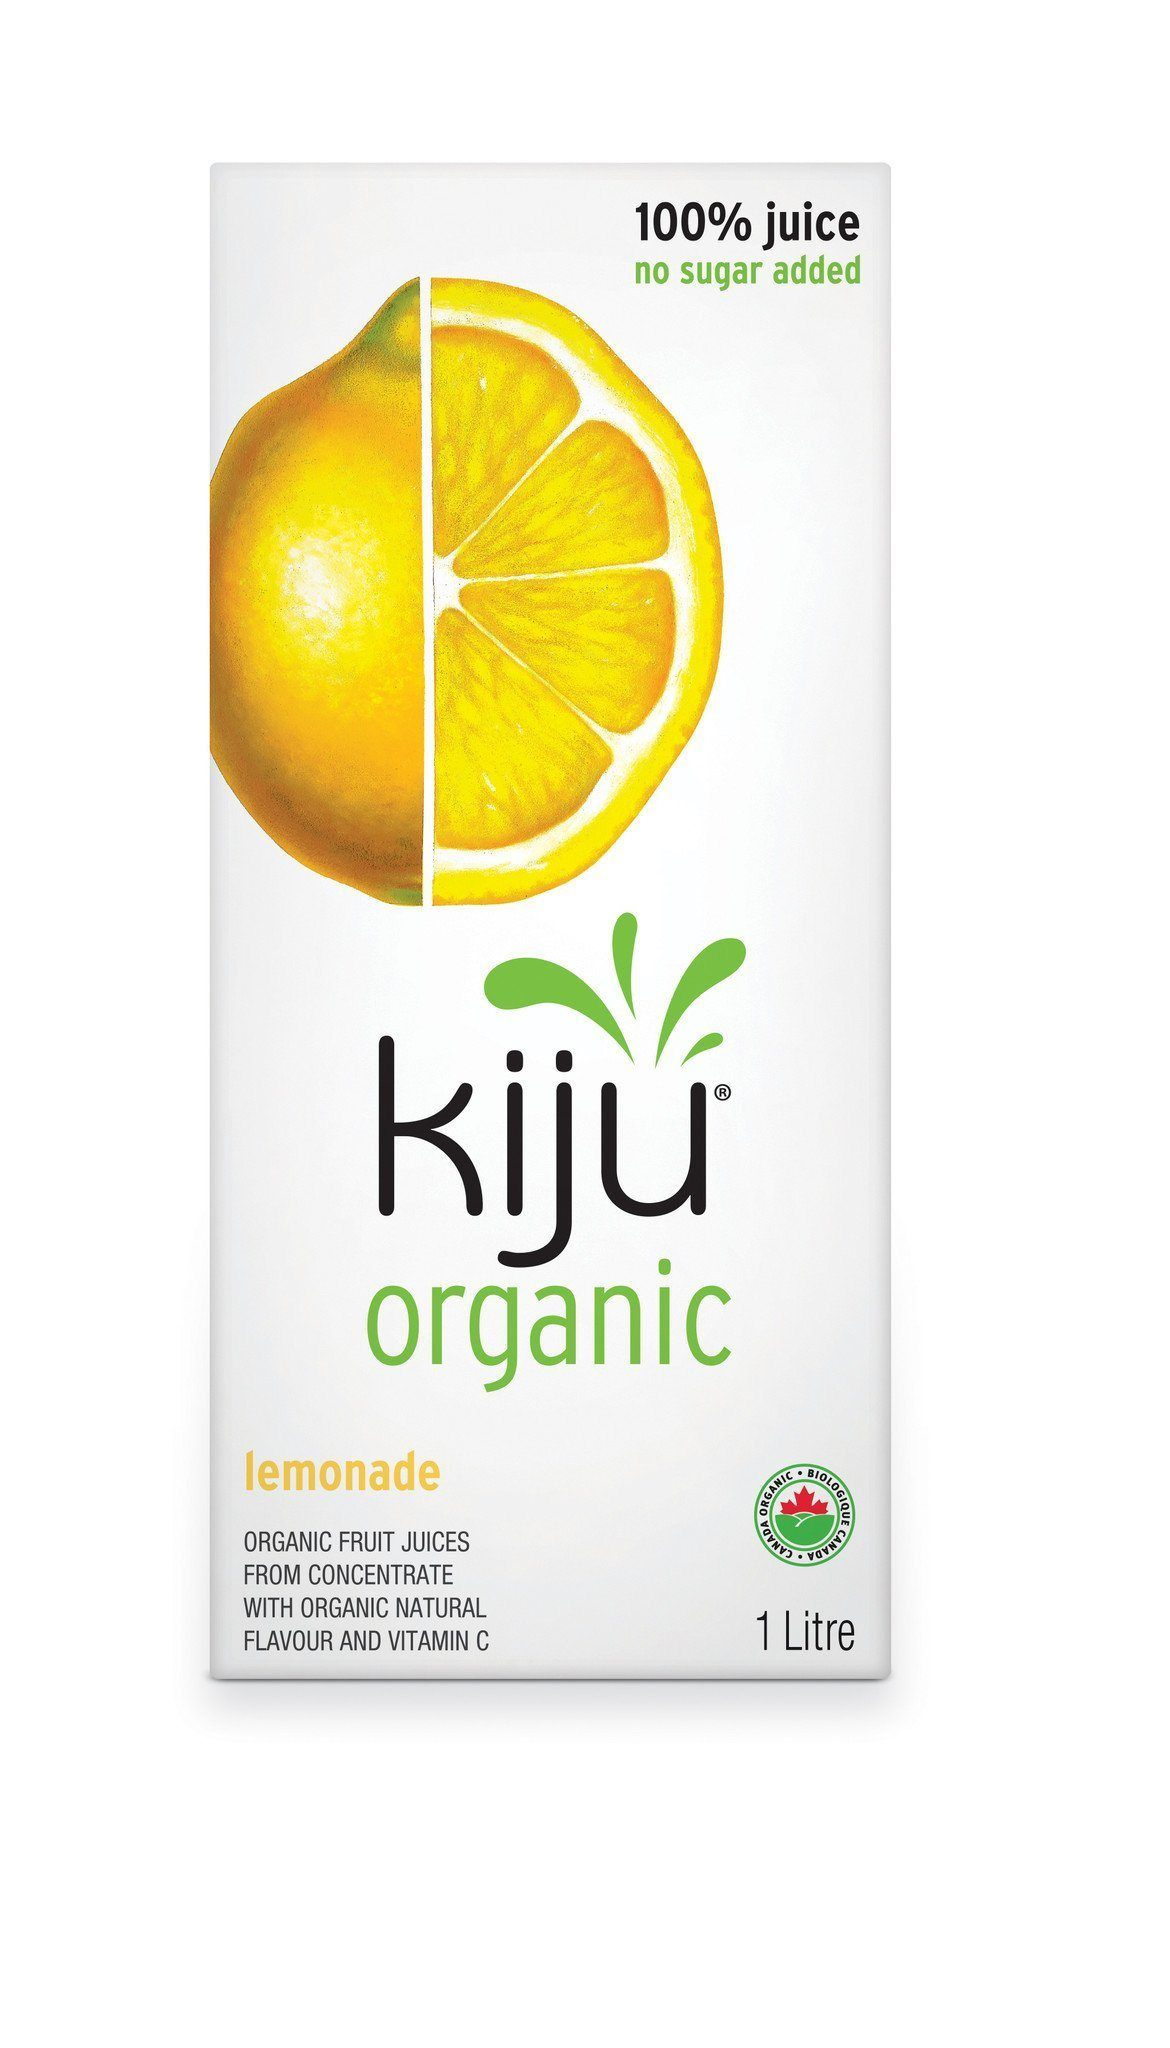 Food & Drink - Kiju - Organic Lemonade, 1L